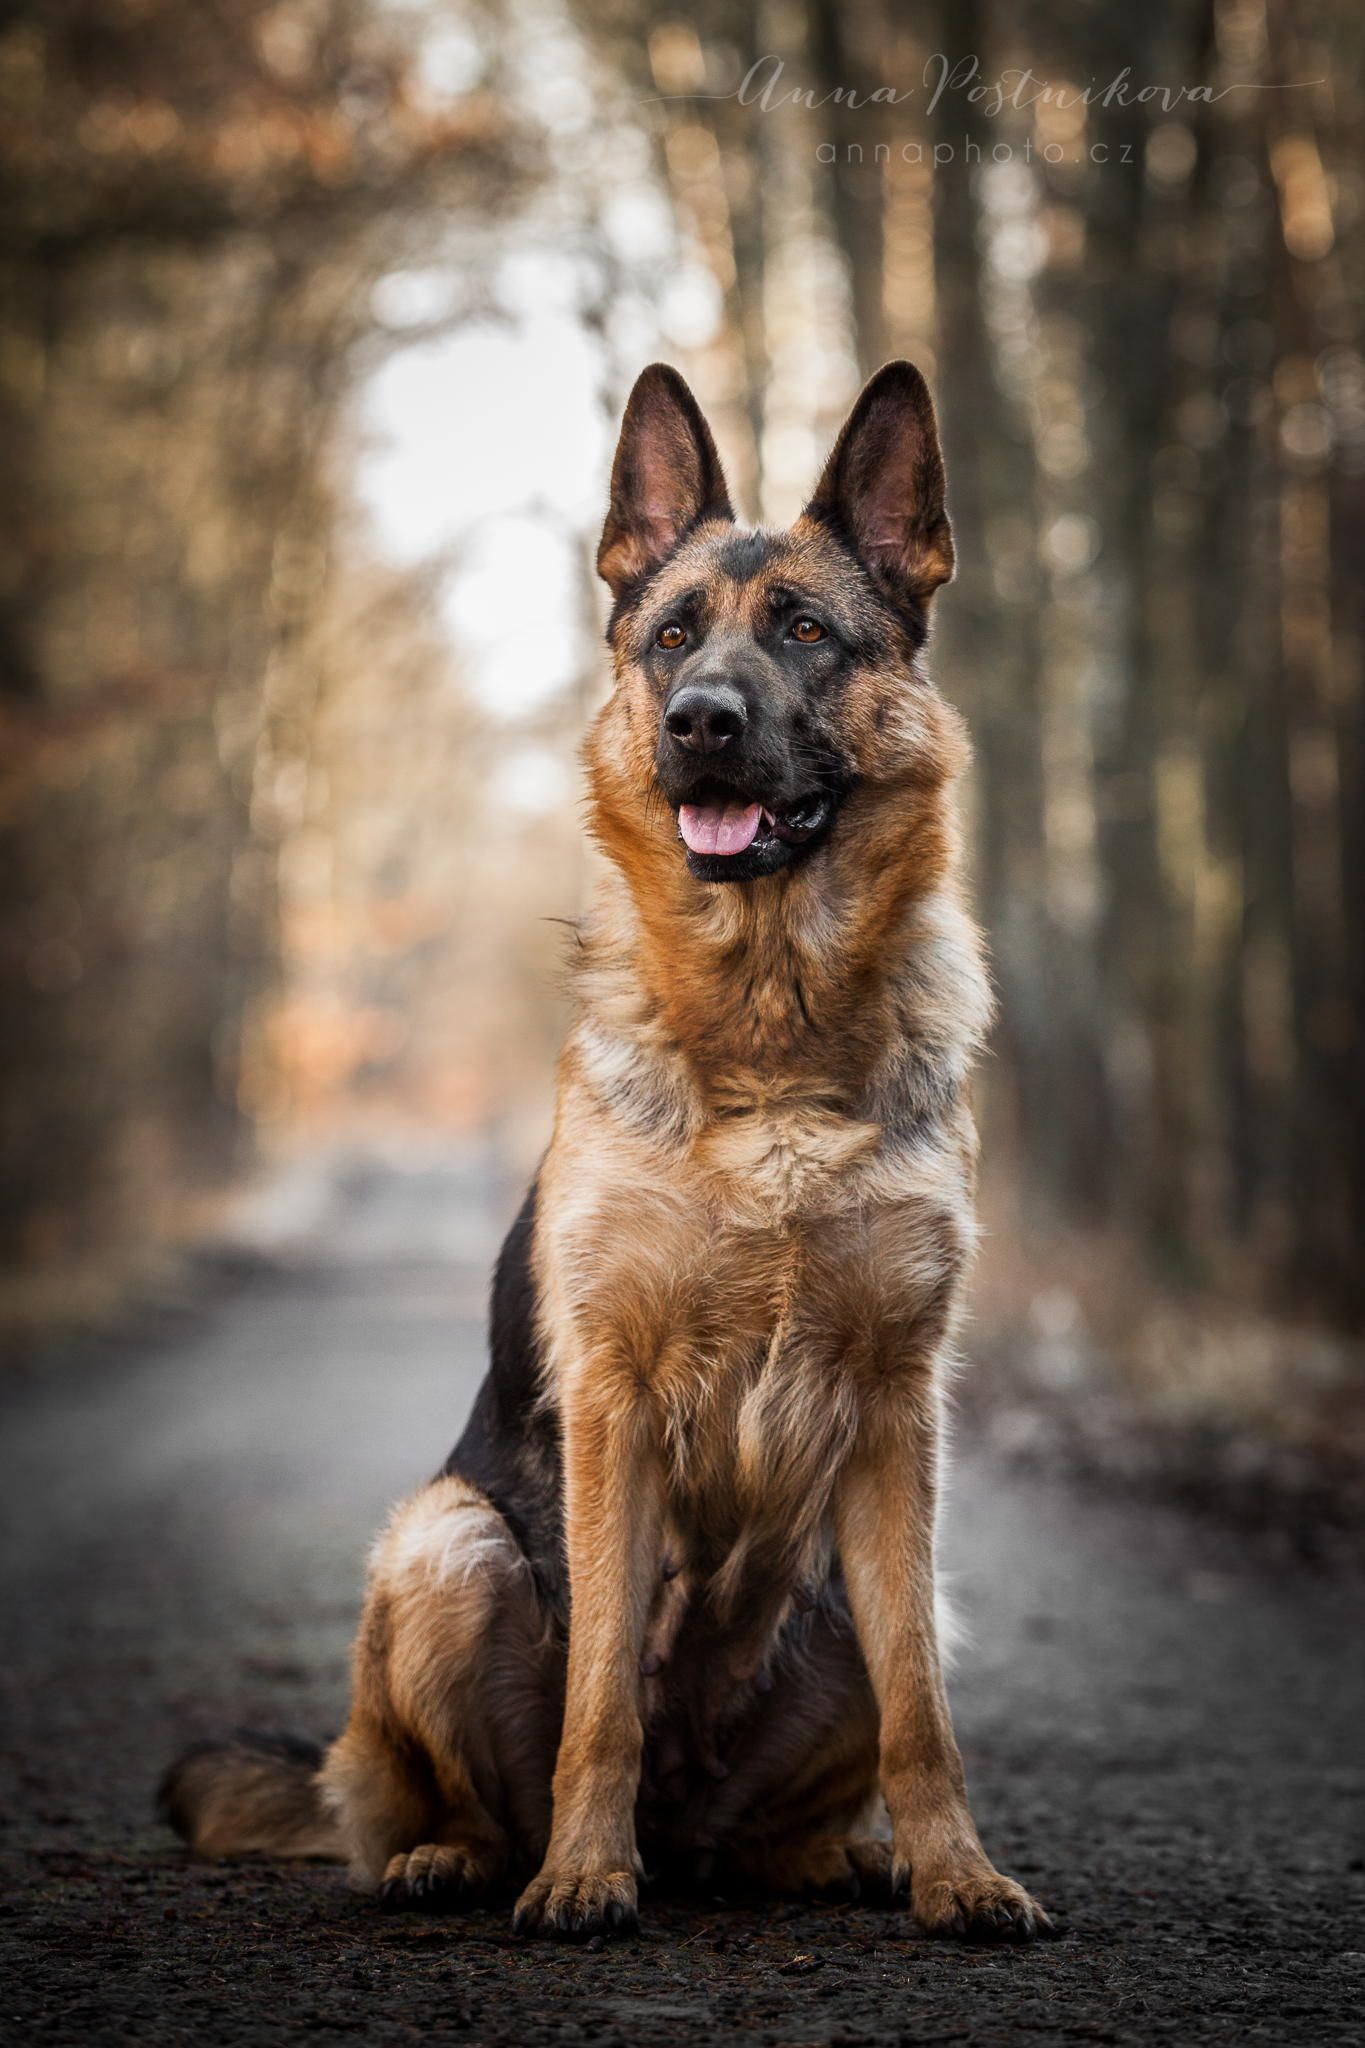 Just Gsd German Shepherd Dog In The Forest Anna Postnikova